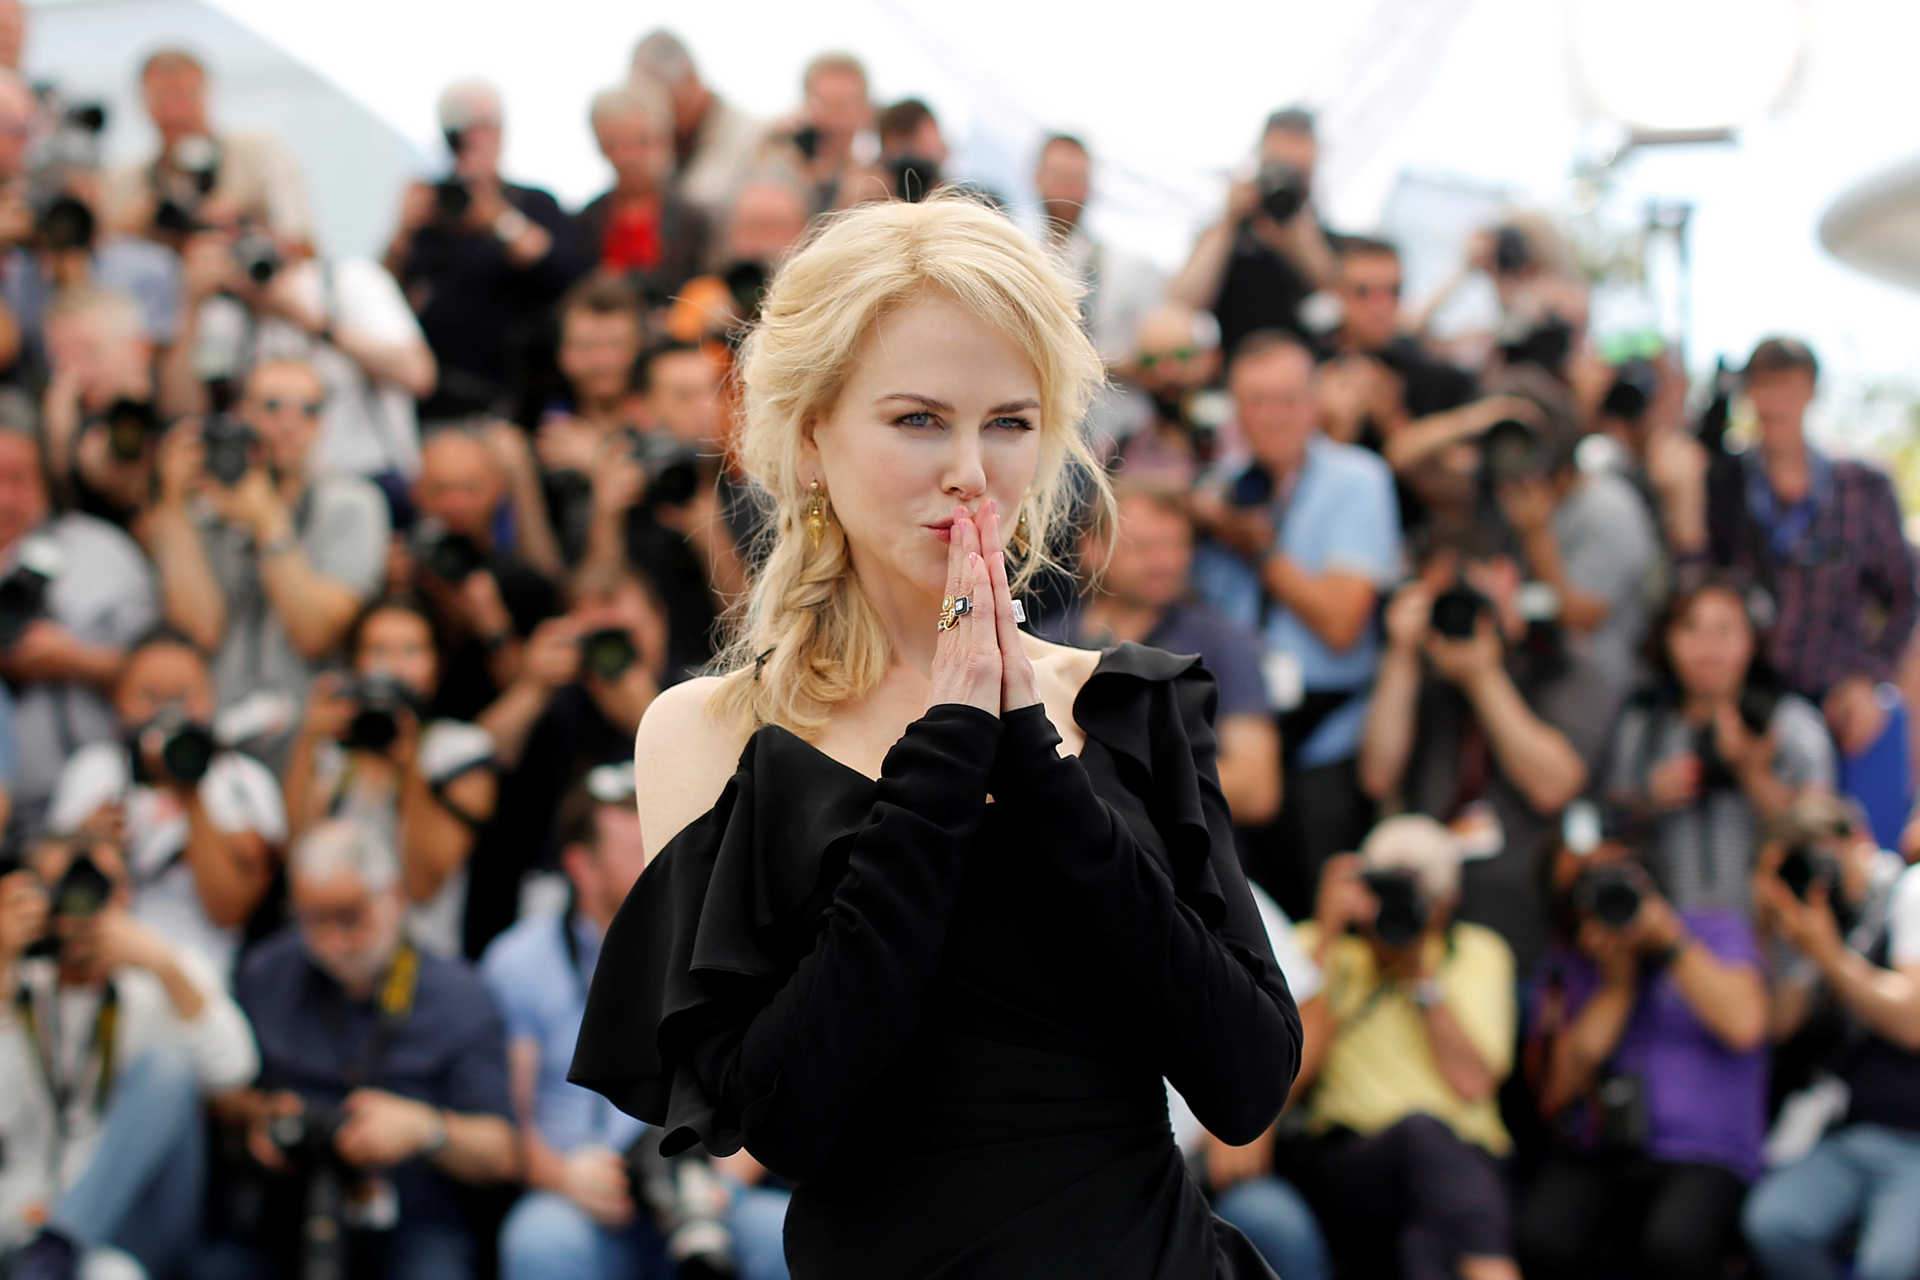 70th Cannes Film Festival – Photocall for the TV series Top of the Lake : China Girl presented as part of 70th Anniversary Events